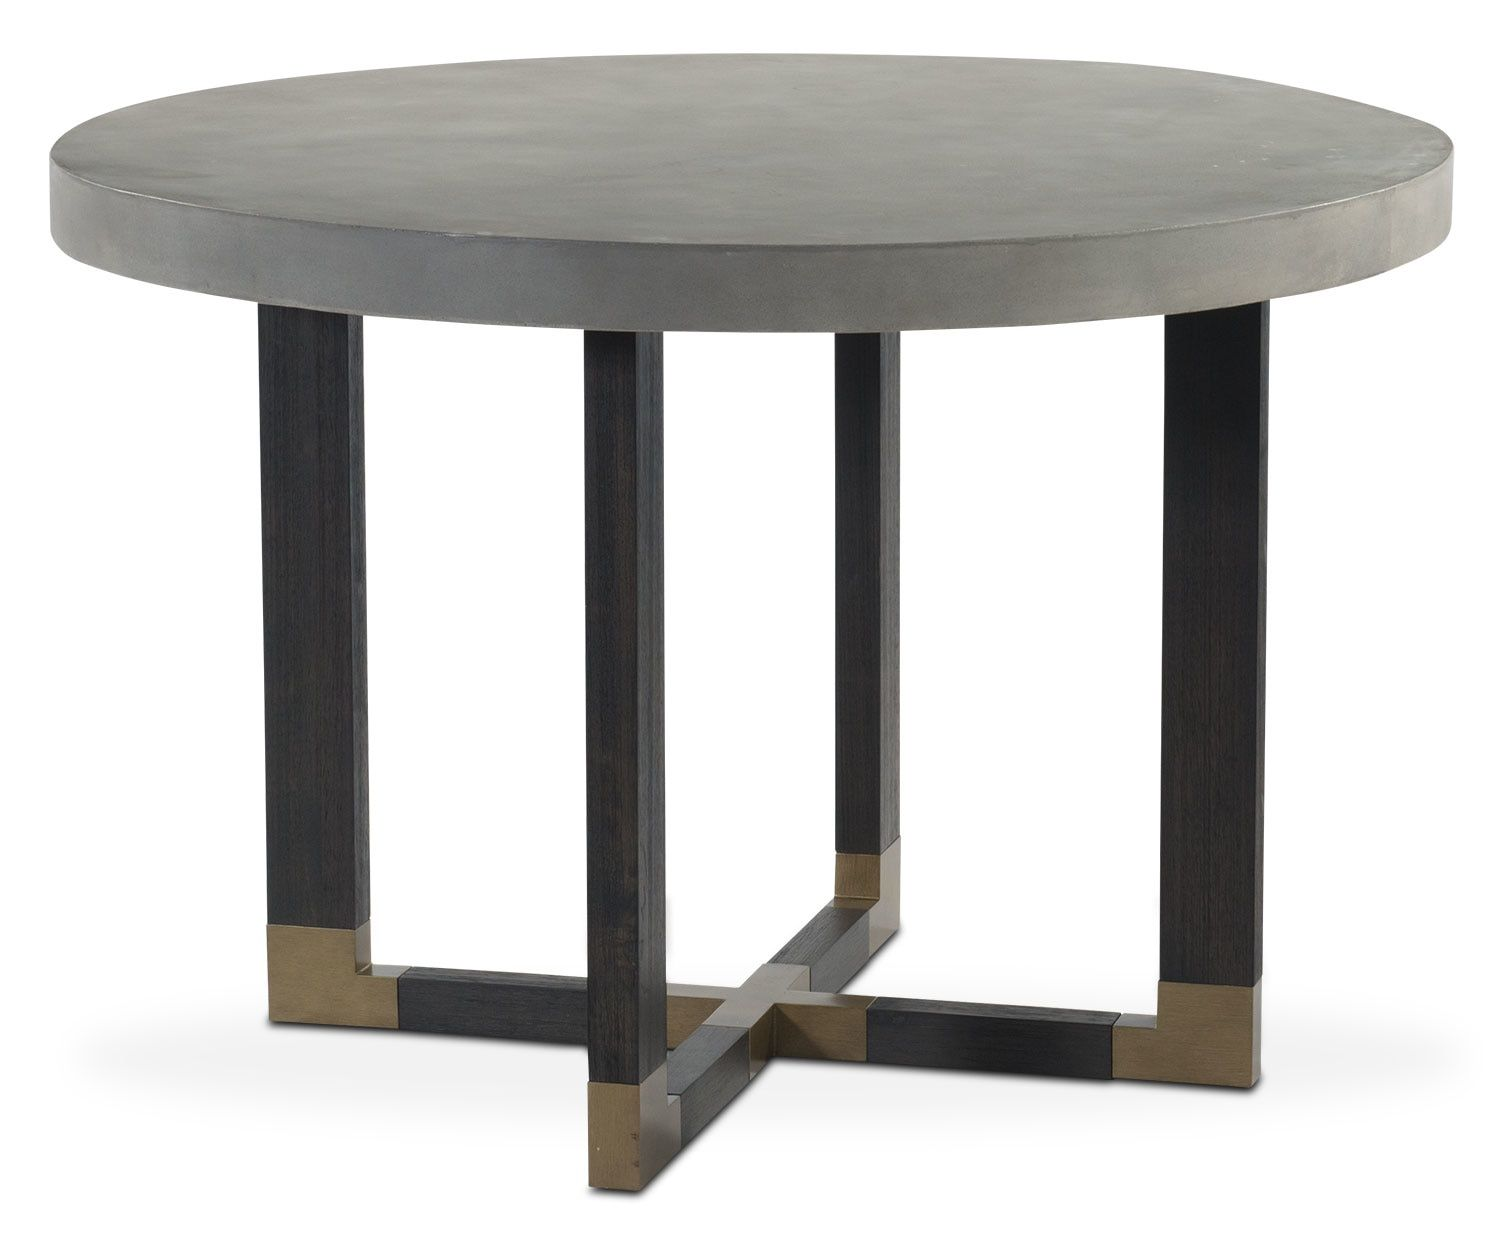 Dining Room Furniture Malibu Round Counter Height Concrete Top Table Umber Concrete Top Dining Table Counter Height Dining Table Metal Dining Table